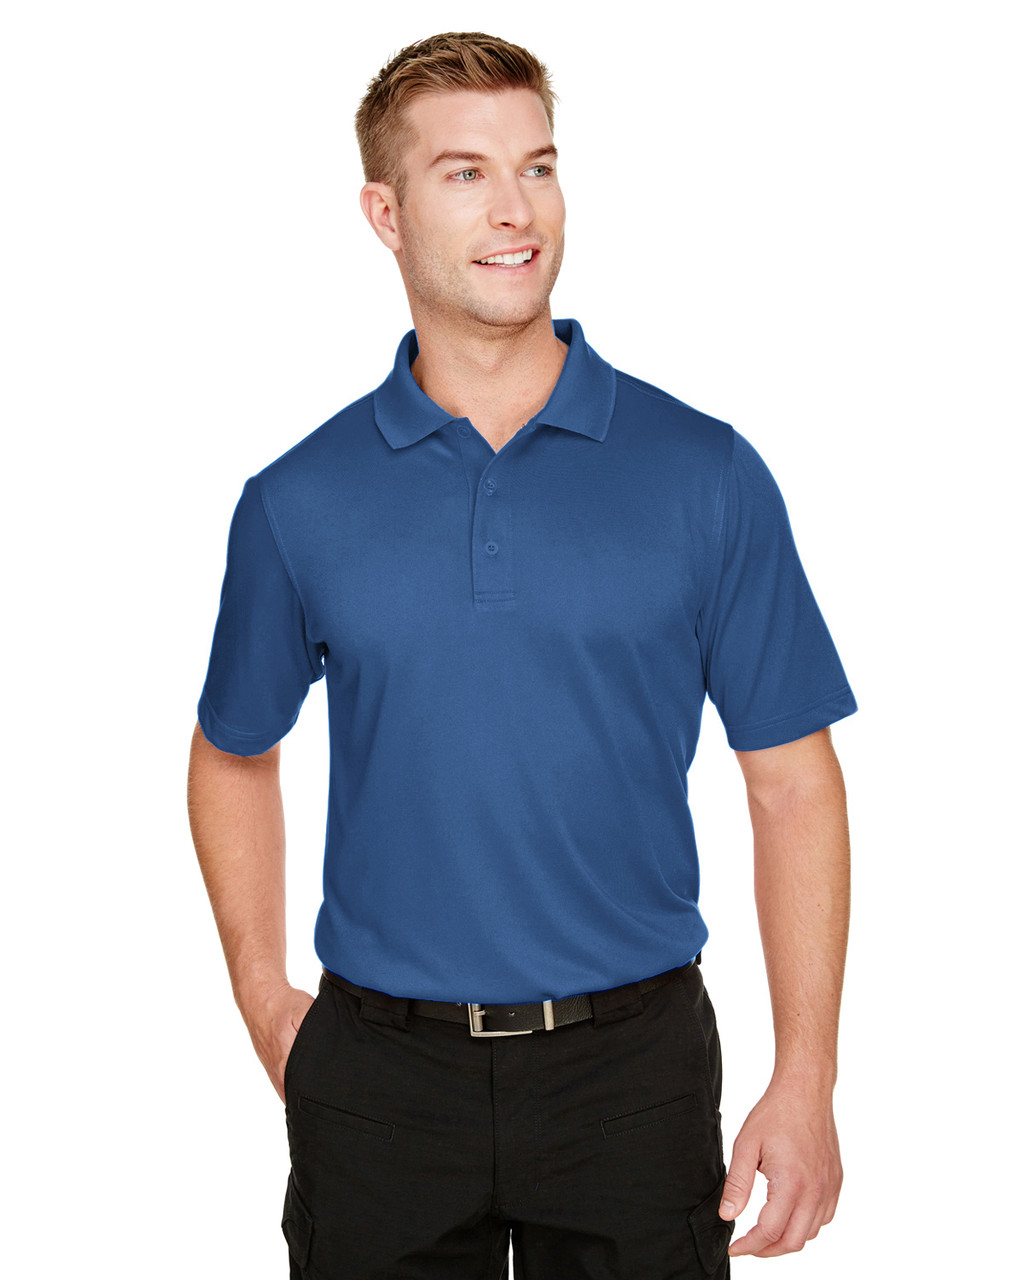 Pool Blue - M348 Harriton Men's Advantage Snag Protection Plus IL Polo Shirt | BlankClothing.ca